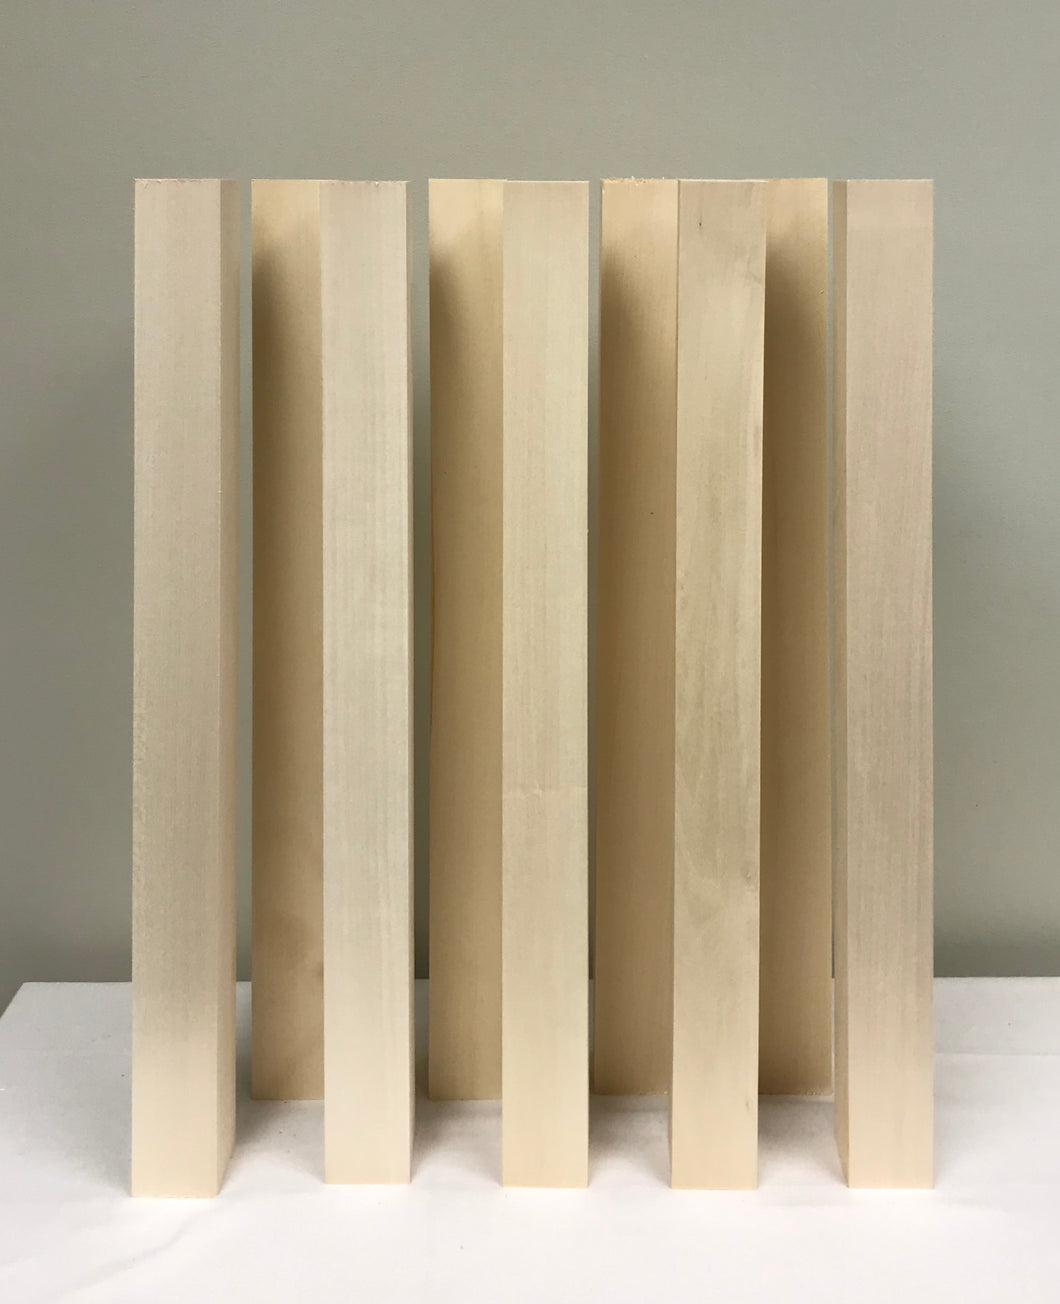 Basswood Carving Blocks (18) 2' x 2